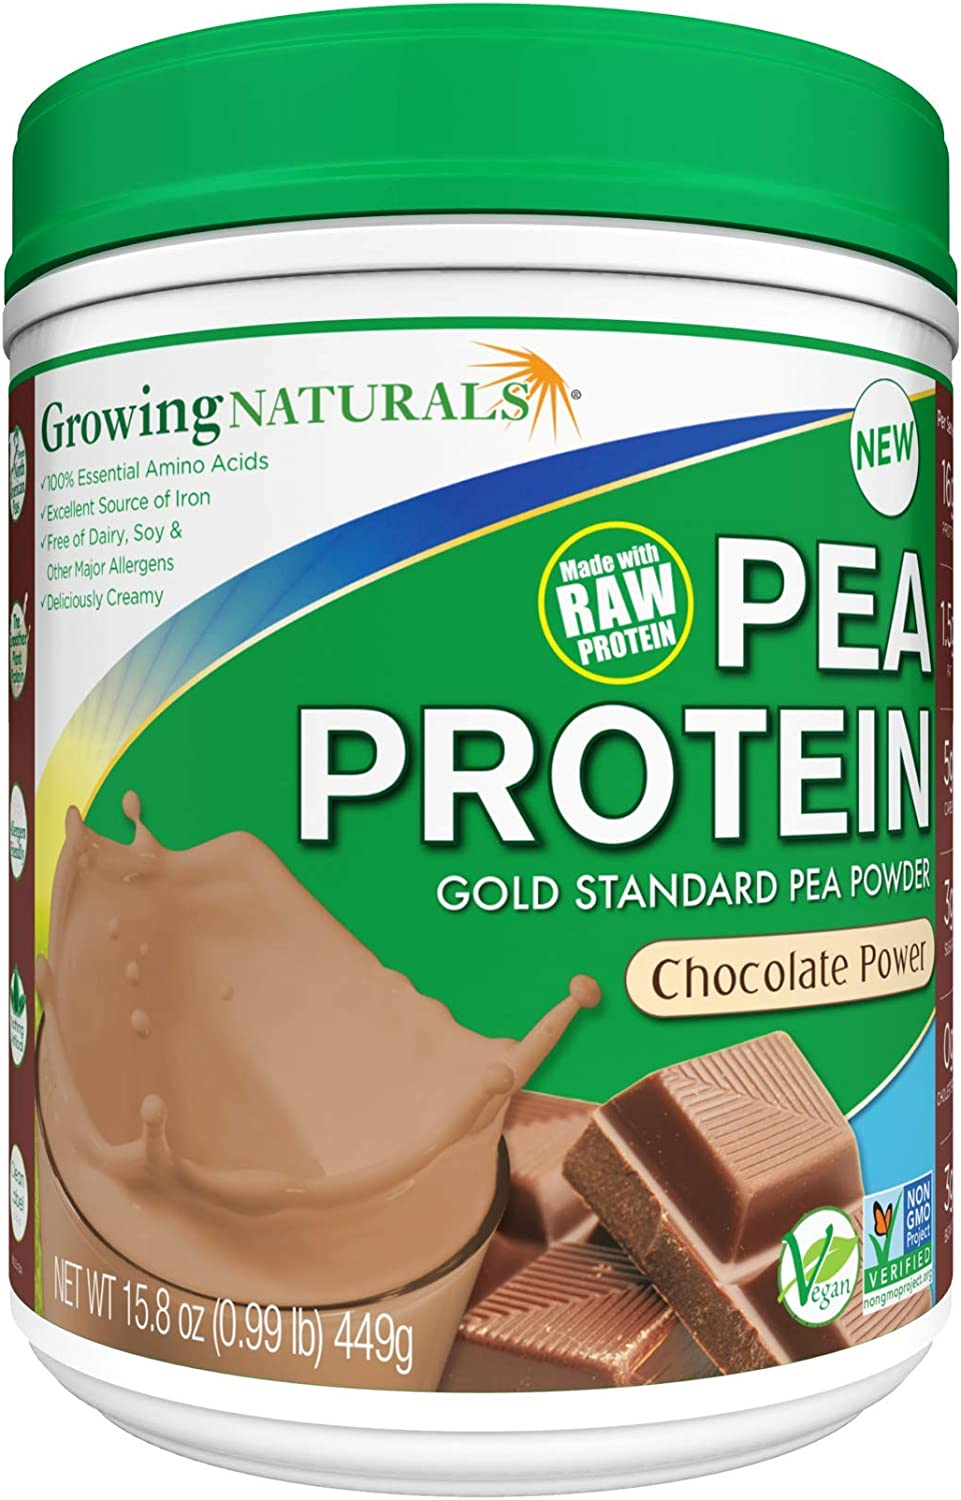 Growing Naturals | Plant Based Protein, Gold Standard Raw Pea Protein Powder | Chocolate Power | Non-GMO, Vegan, Gluten-Free, Keto Friendly, Shelf-Stable | 1LB